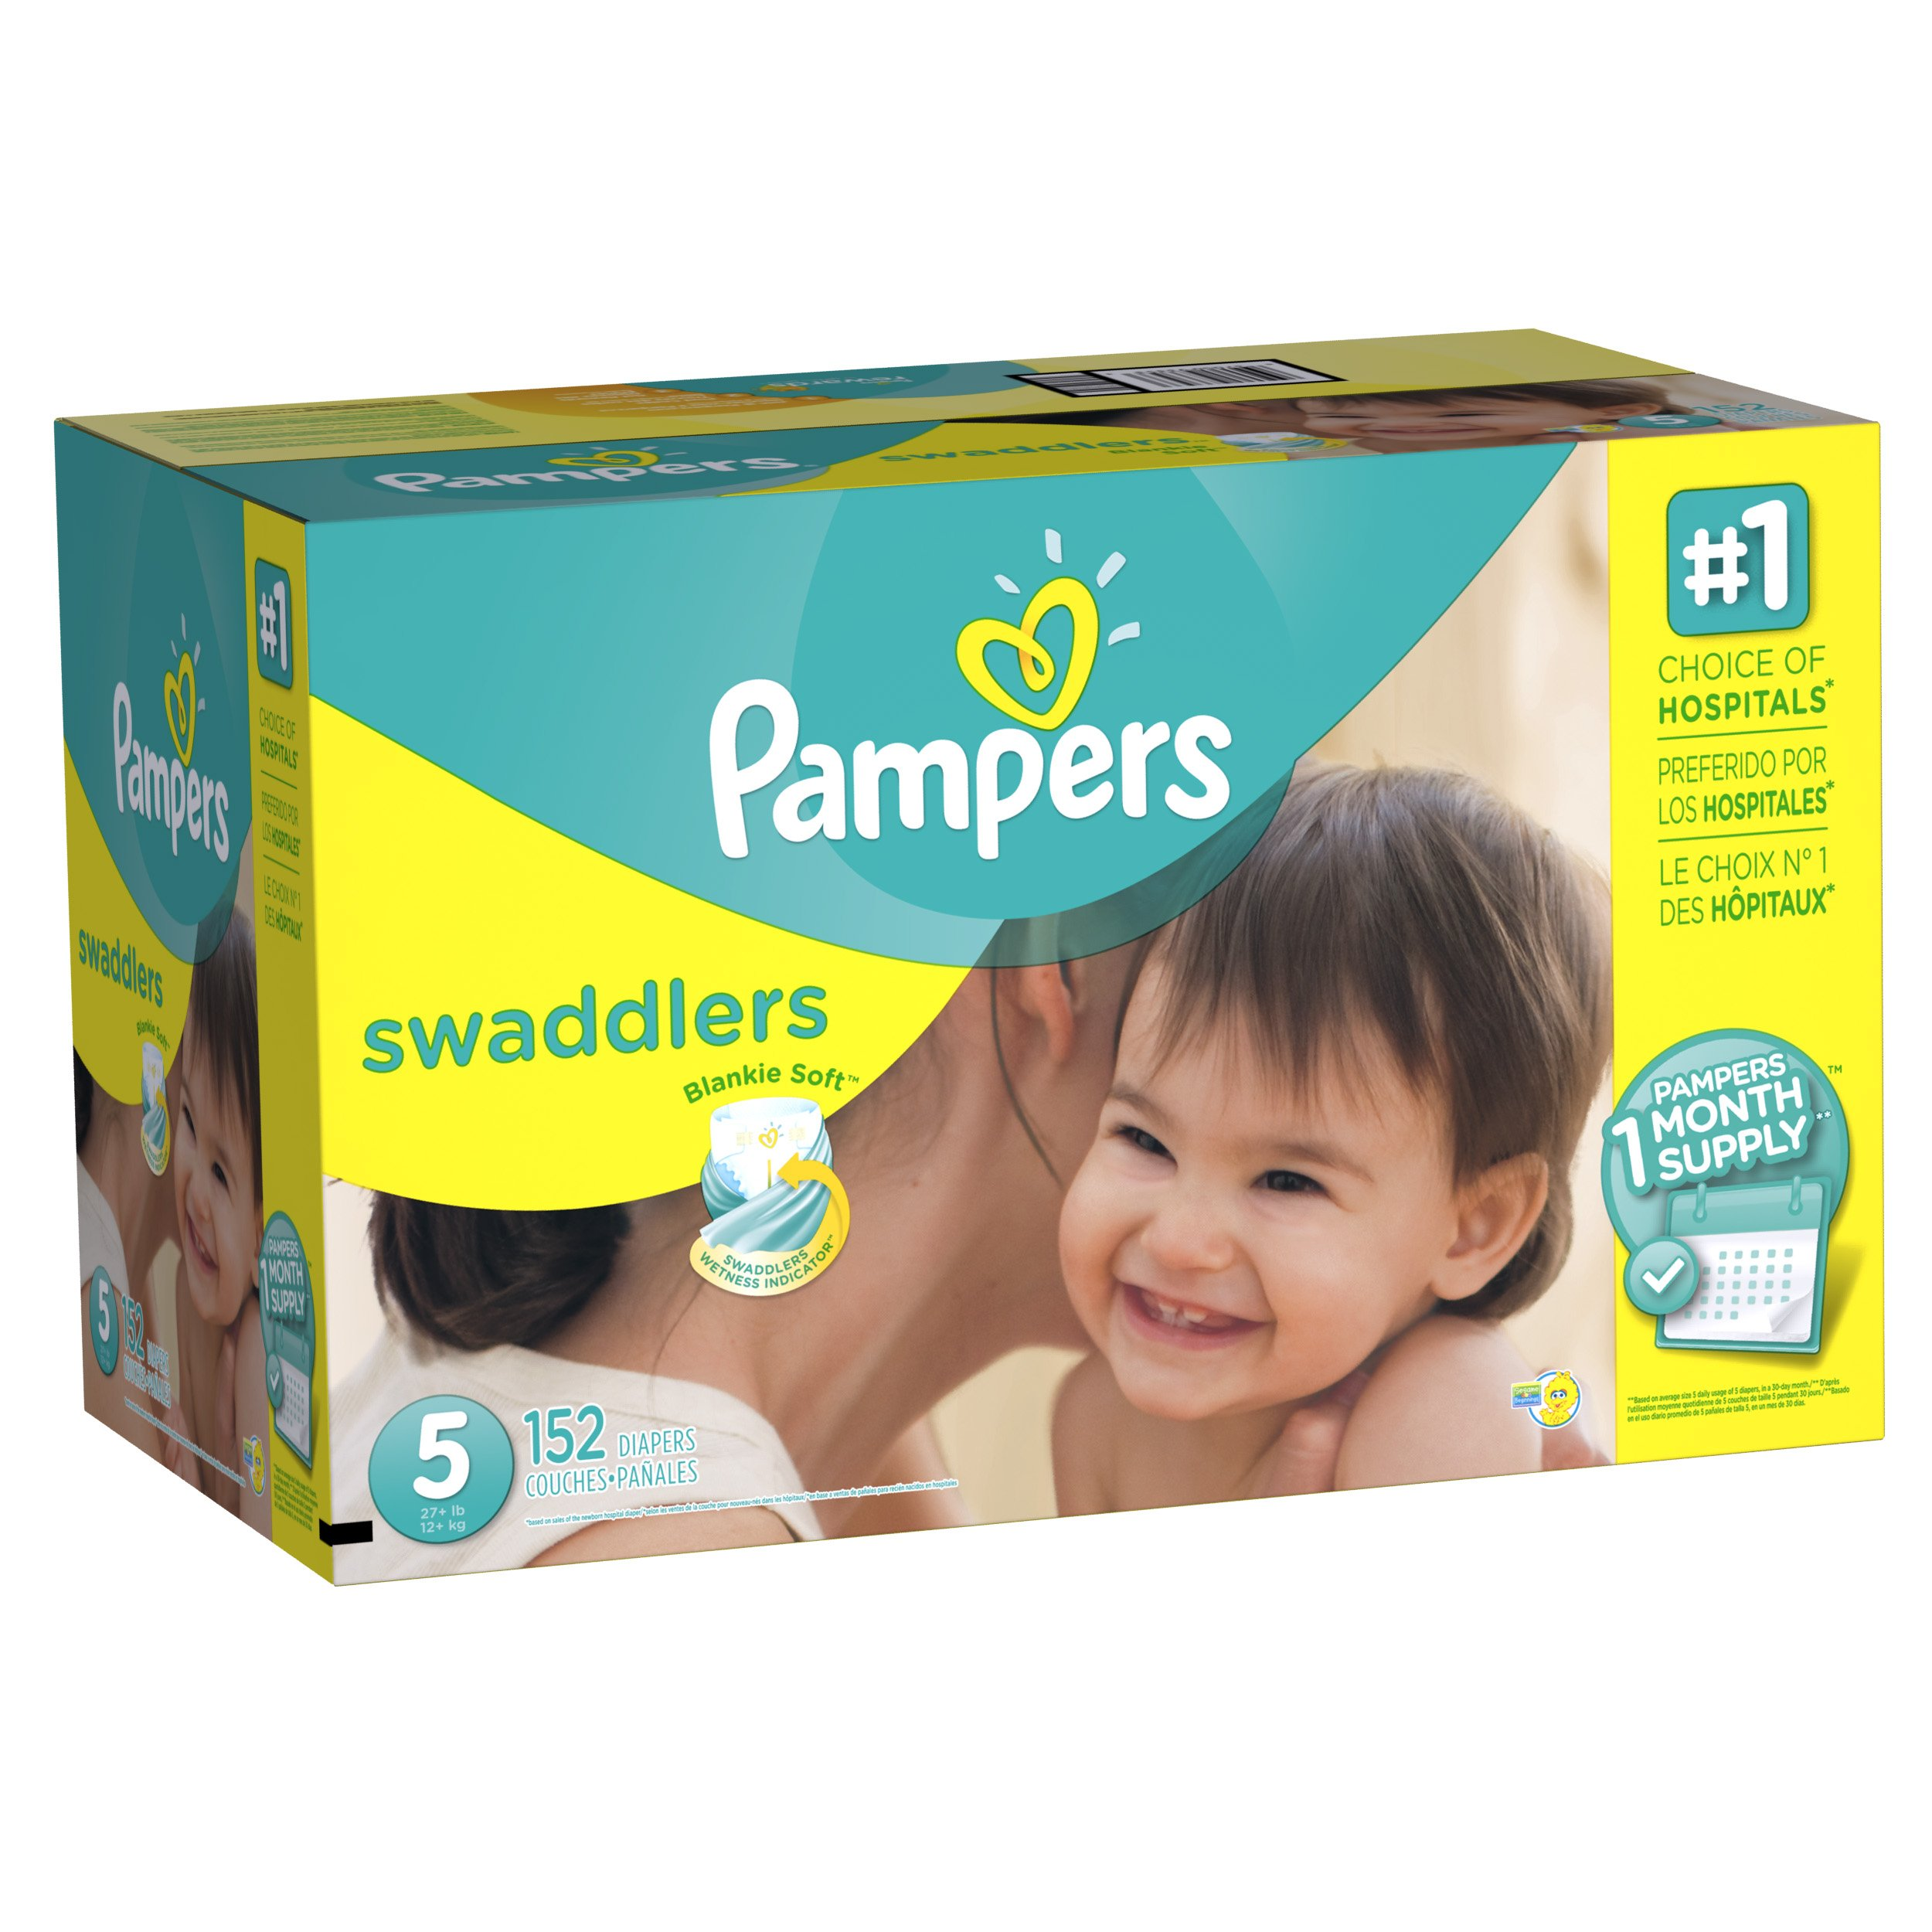 Pampers Swadlers Size 5 by Pampers